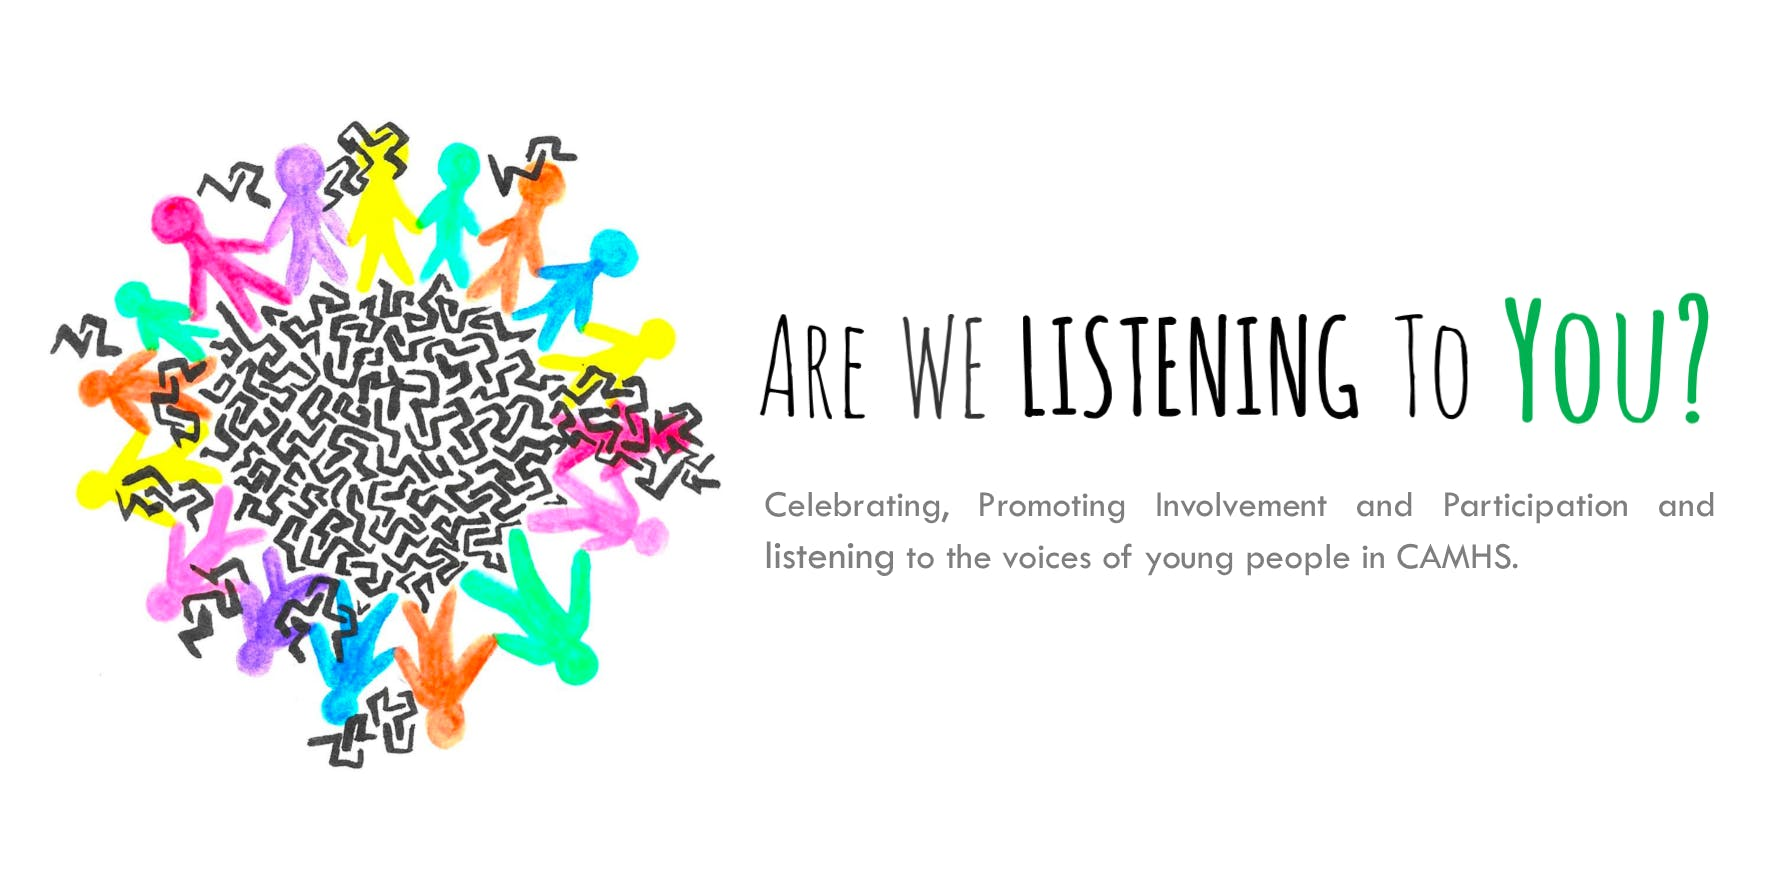 CAMHS - Are We Listening to You?